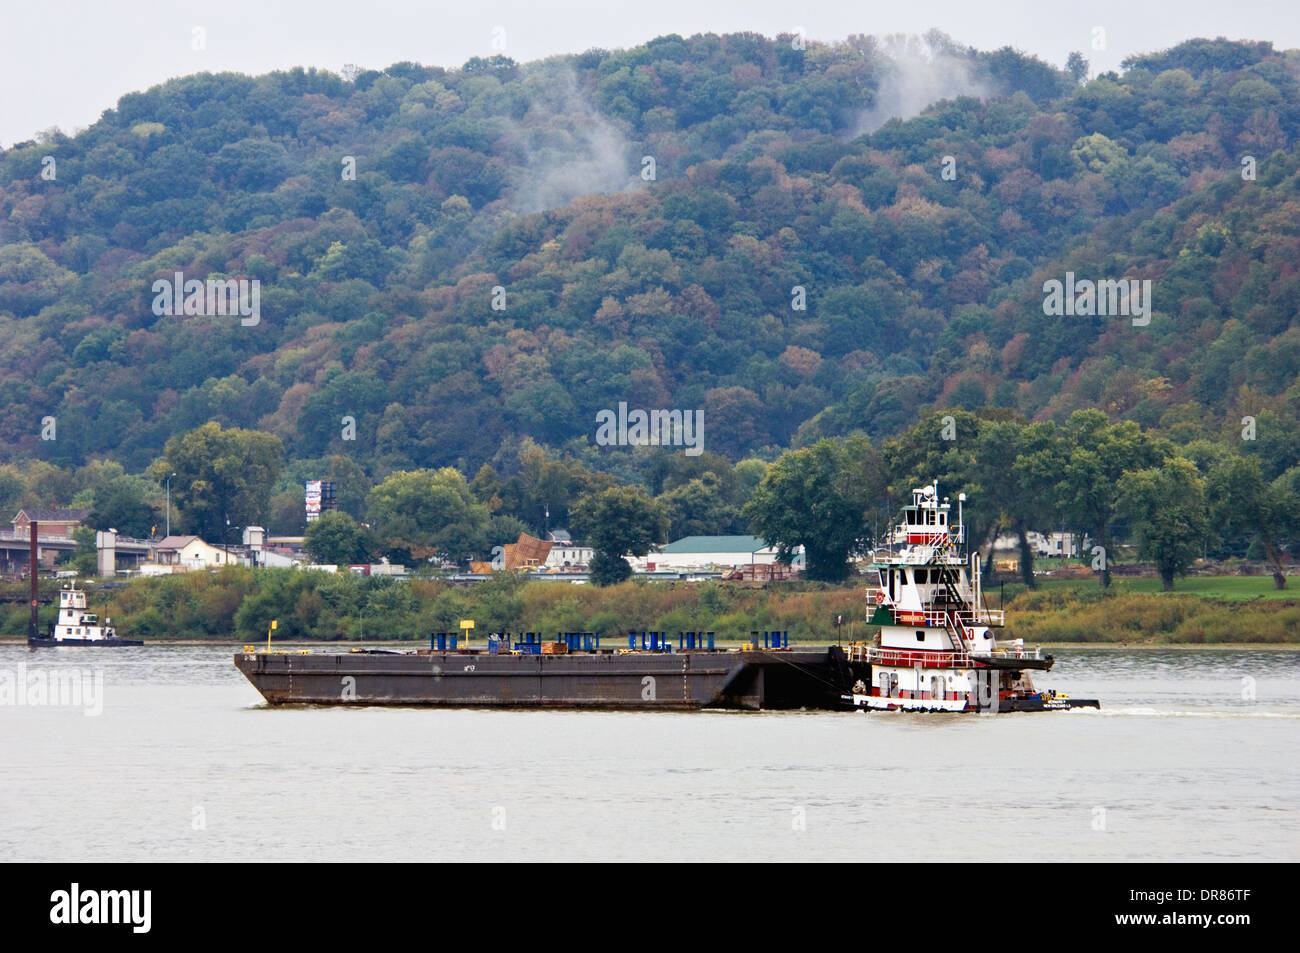 Barge on the Ohio River with Milton Kentucky on the Far Bank - Stock Image